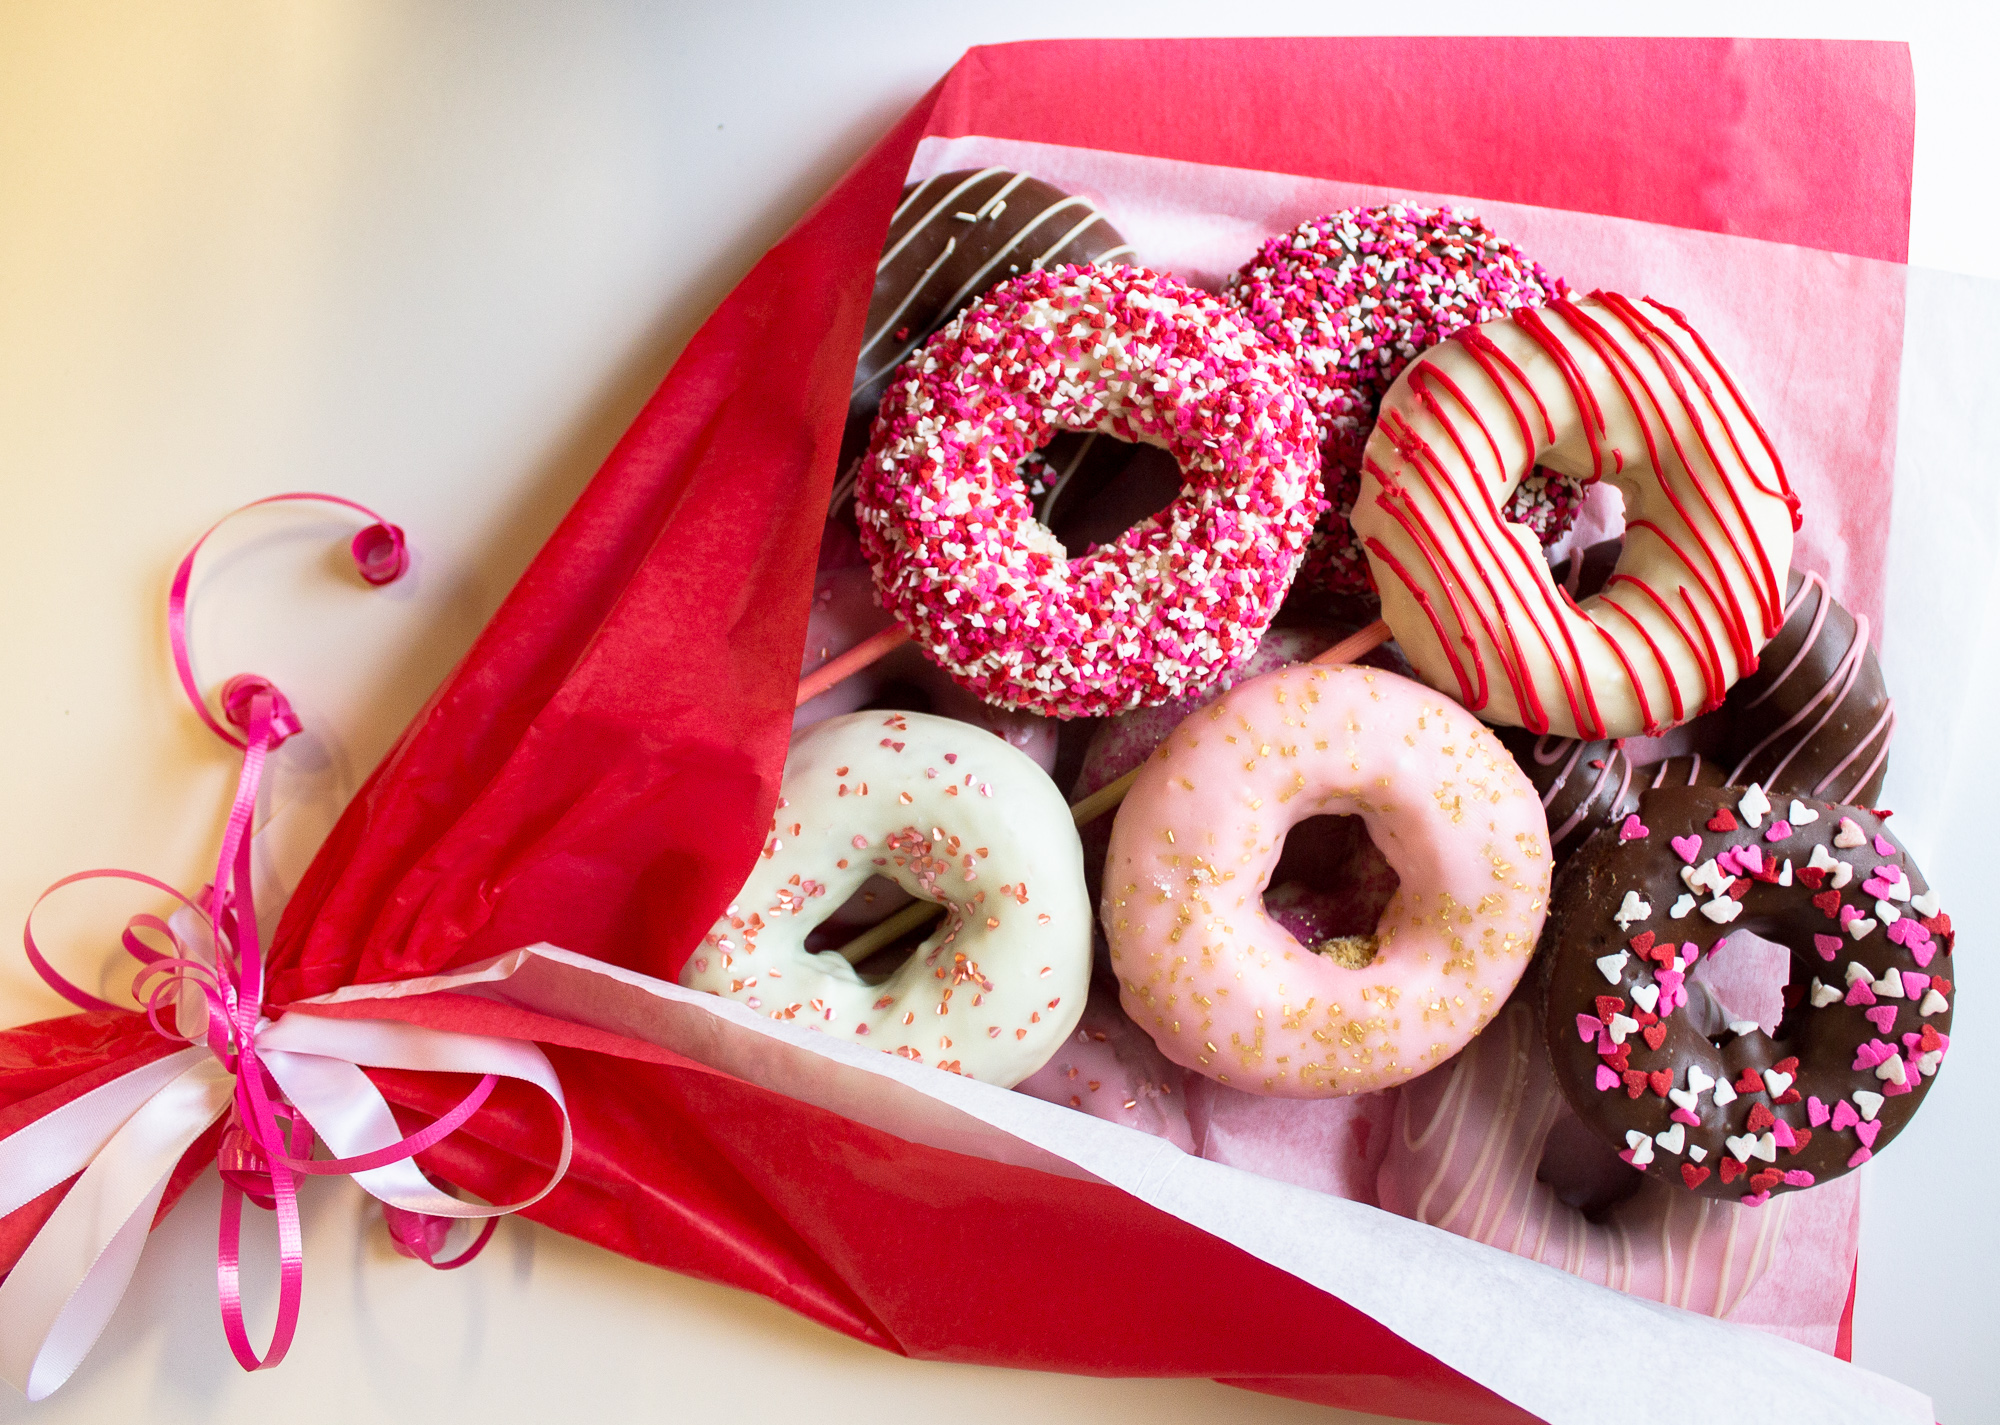 Holey Moley Doughnuts Debuts Valentine's Day Doughnut Bouquets